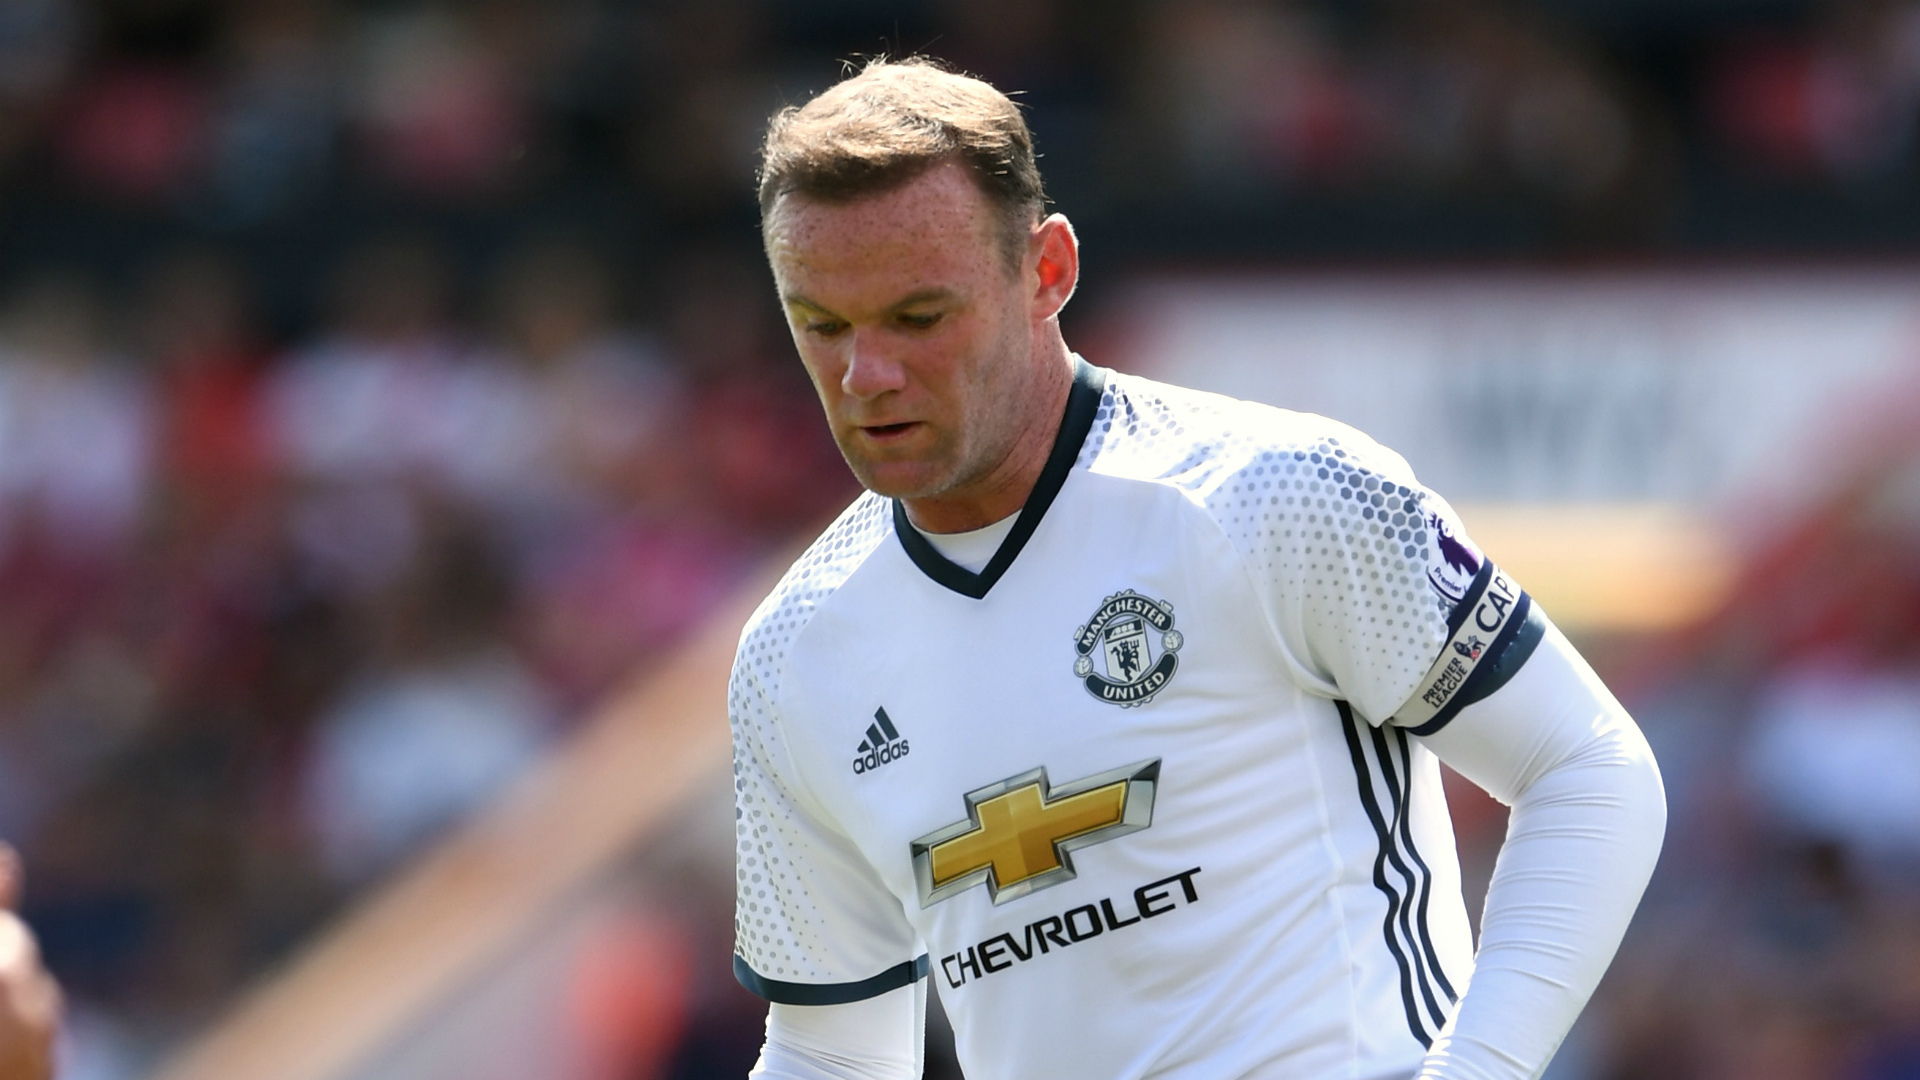 Alan Shearer says worldwide retirement would benefit Wayne Rooney & Man Utd